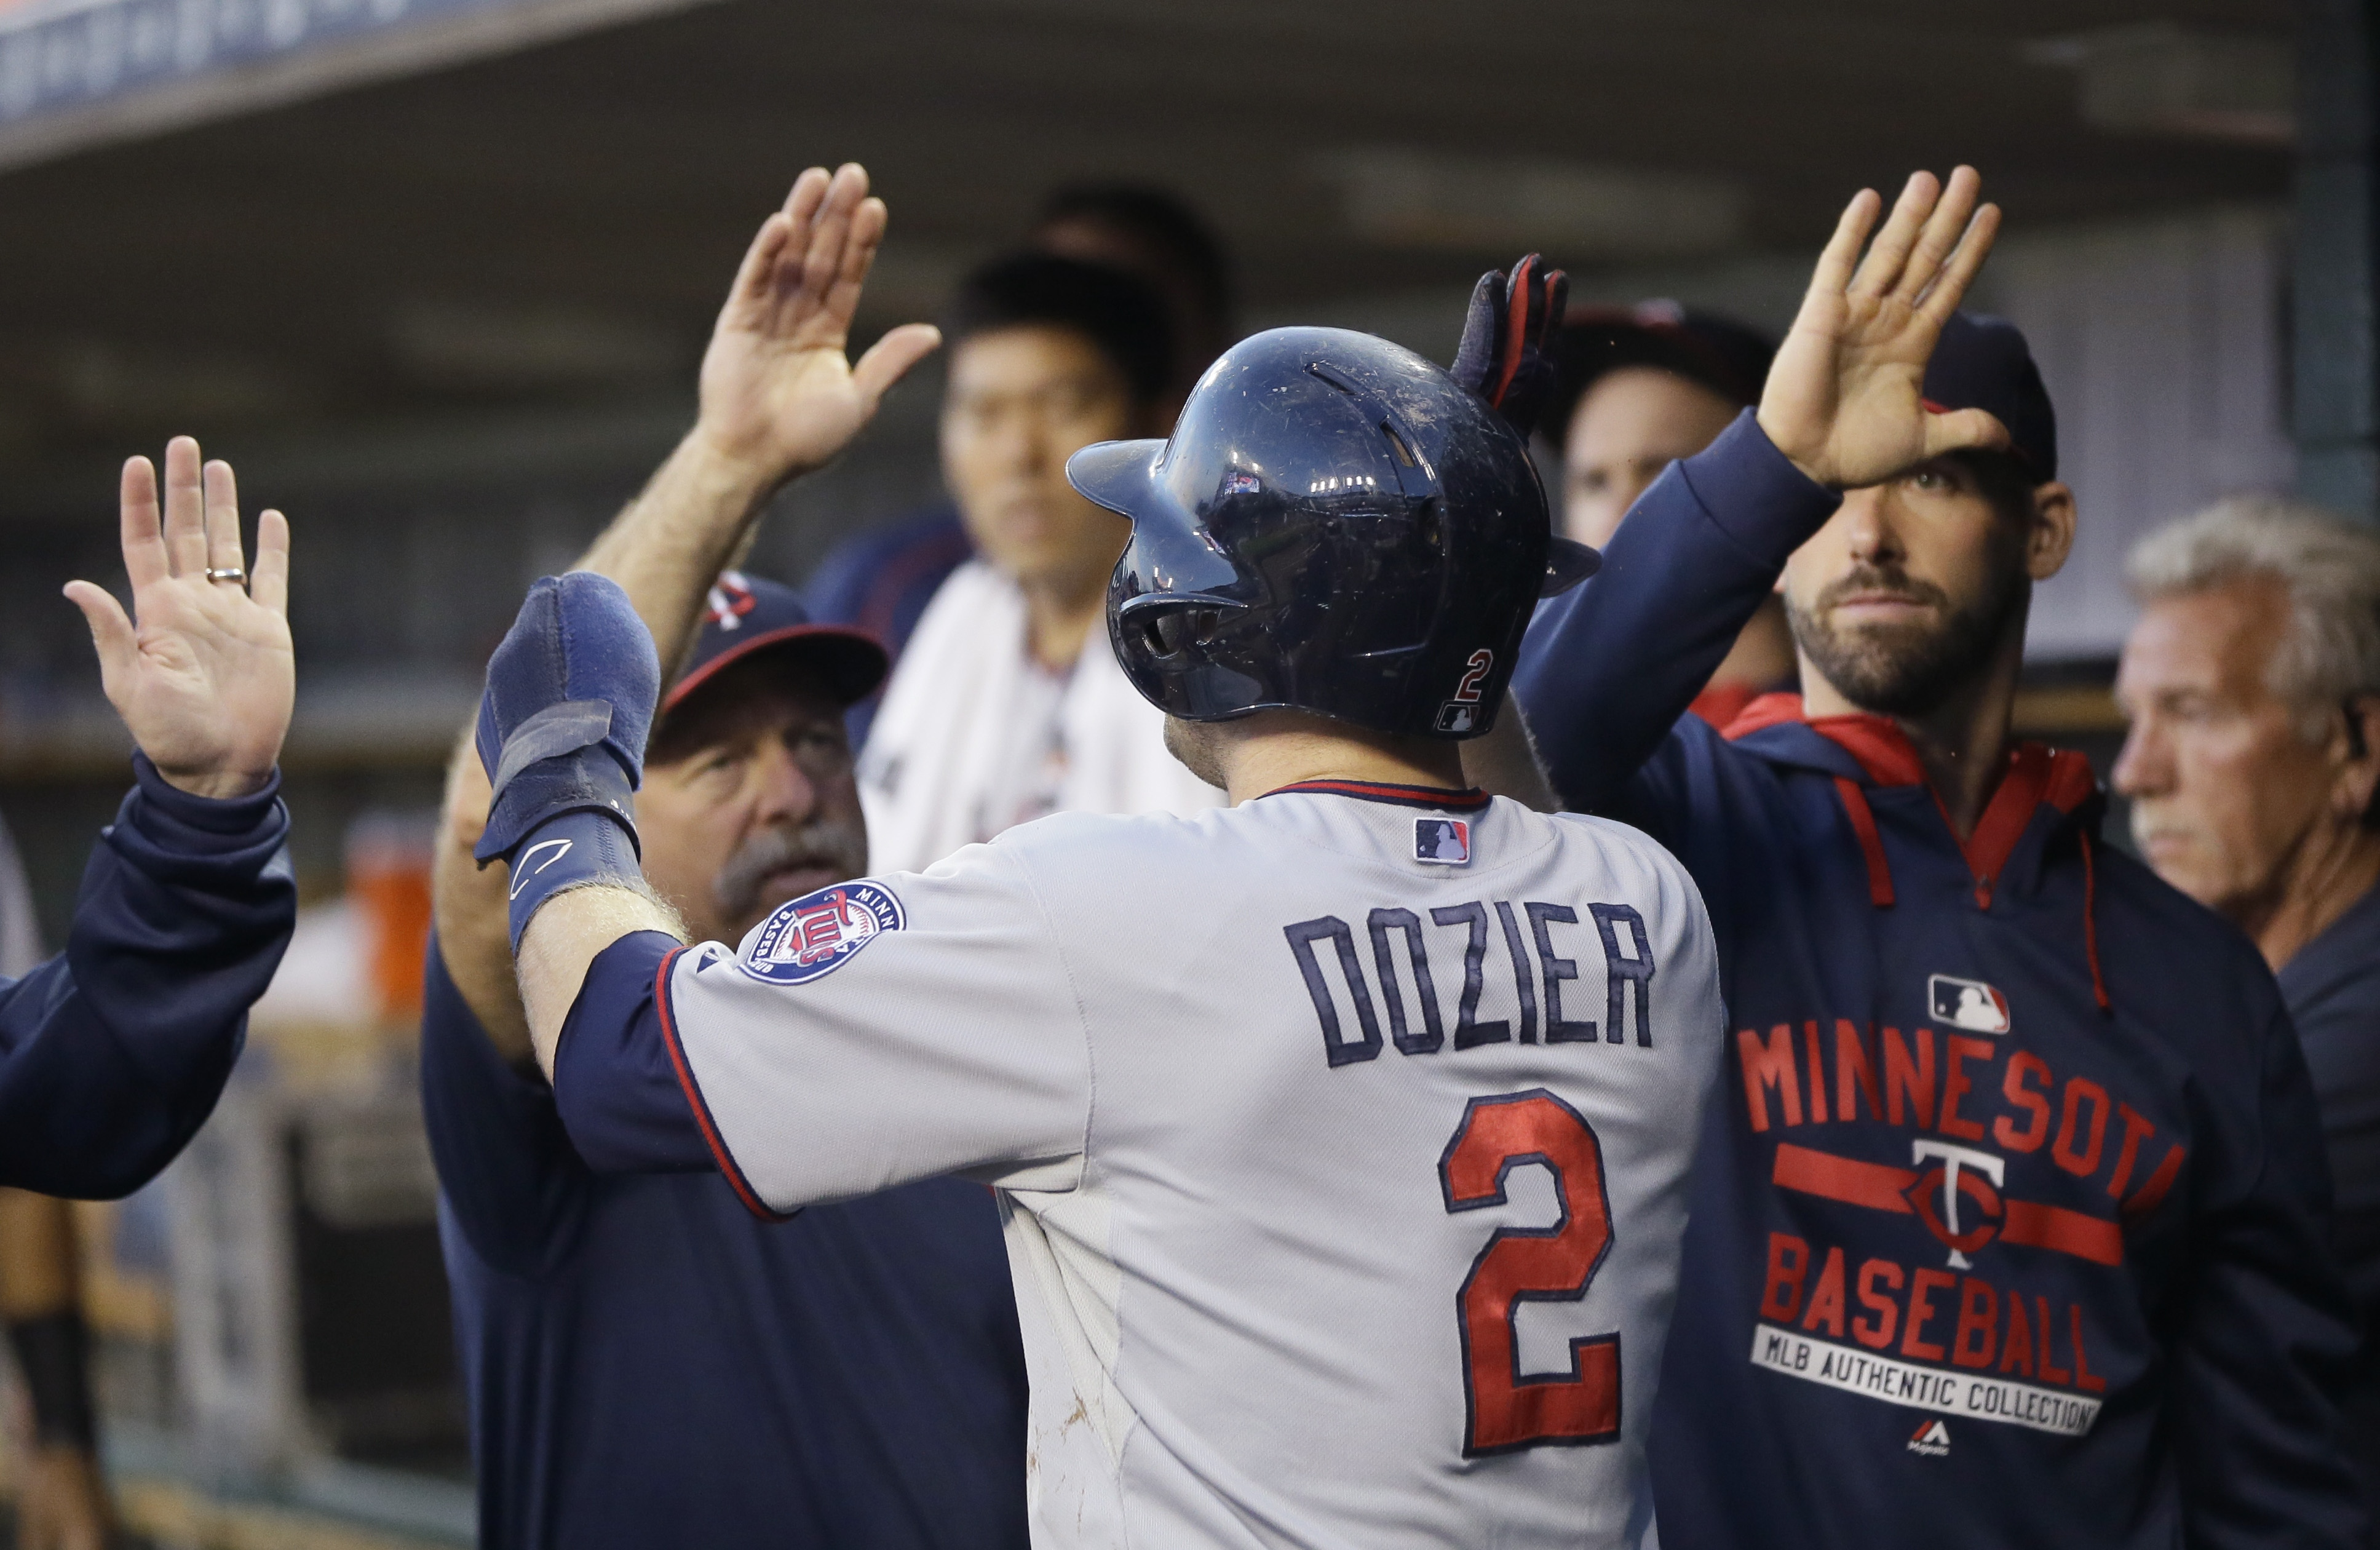 Minnesota Twins' Brian Dozier is congratulated after scoring during the first inning of a baseball game against the Detroit Tigers, Saturday, Sept. 26, 2015 in Detroit. (AP Photo/Carlos Osorio)